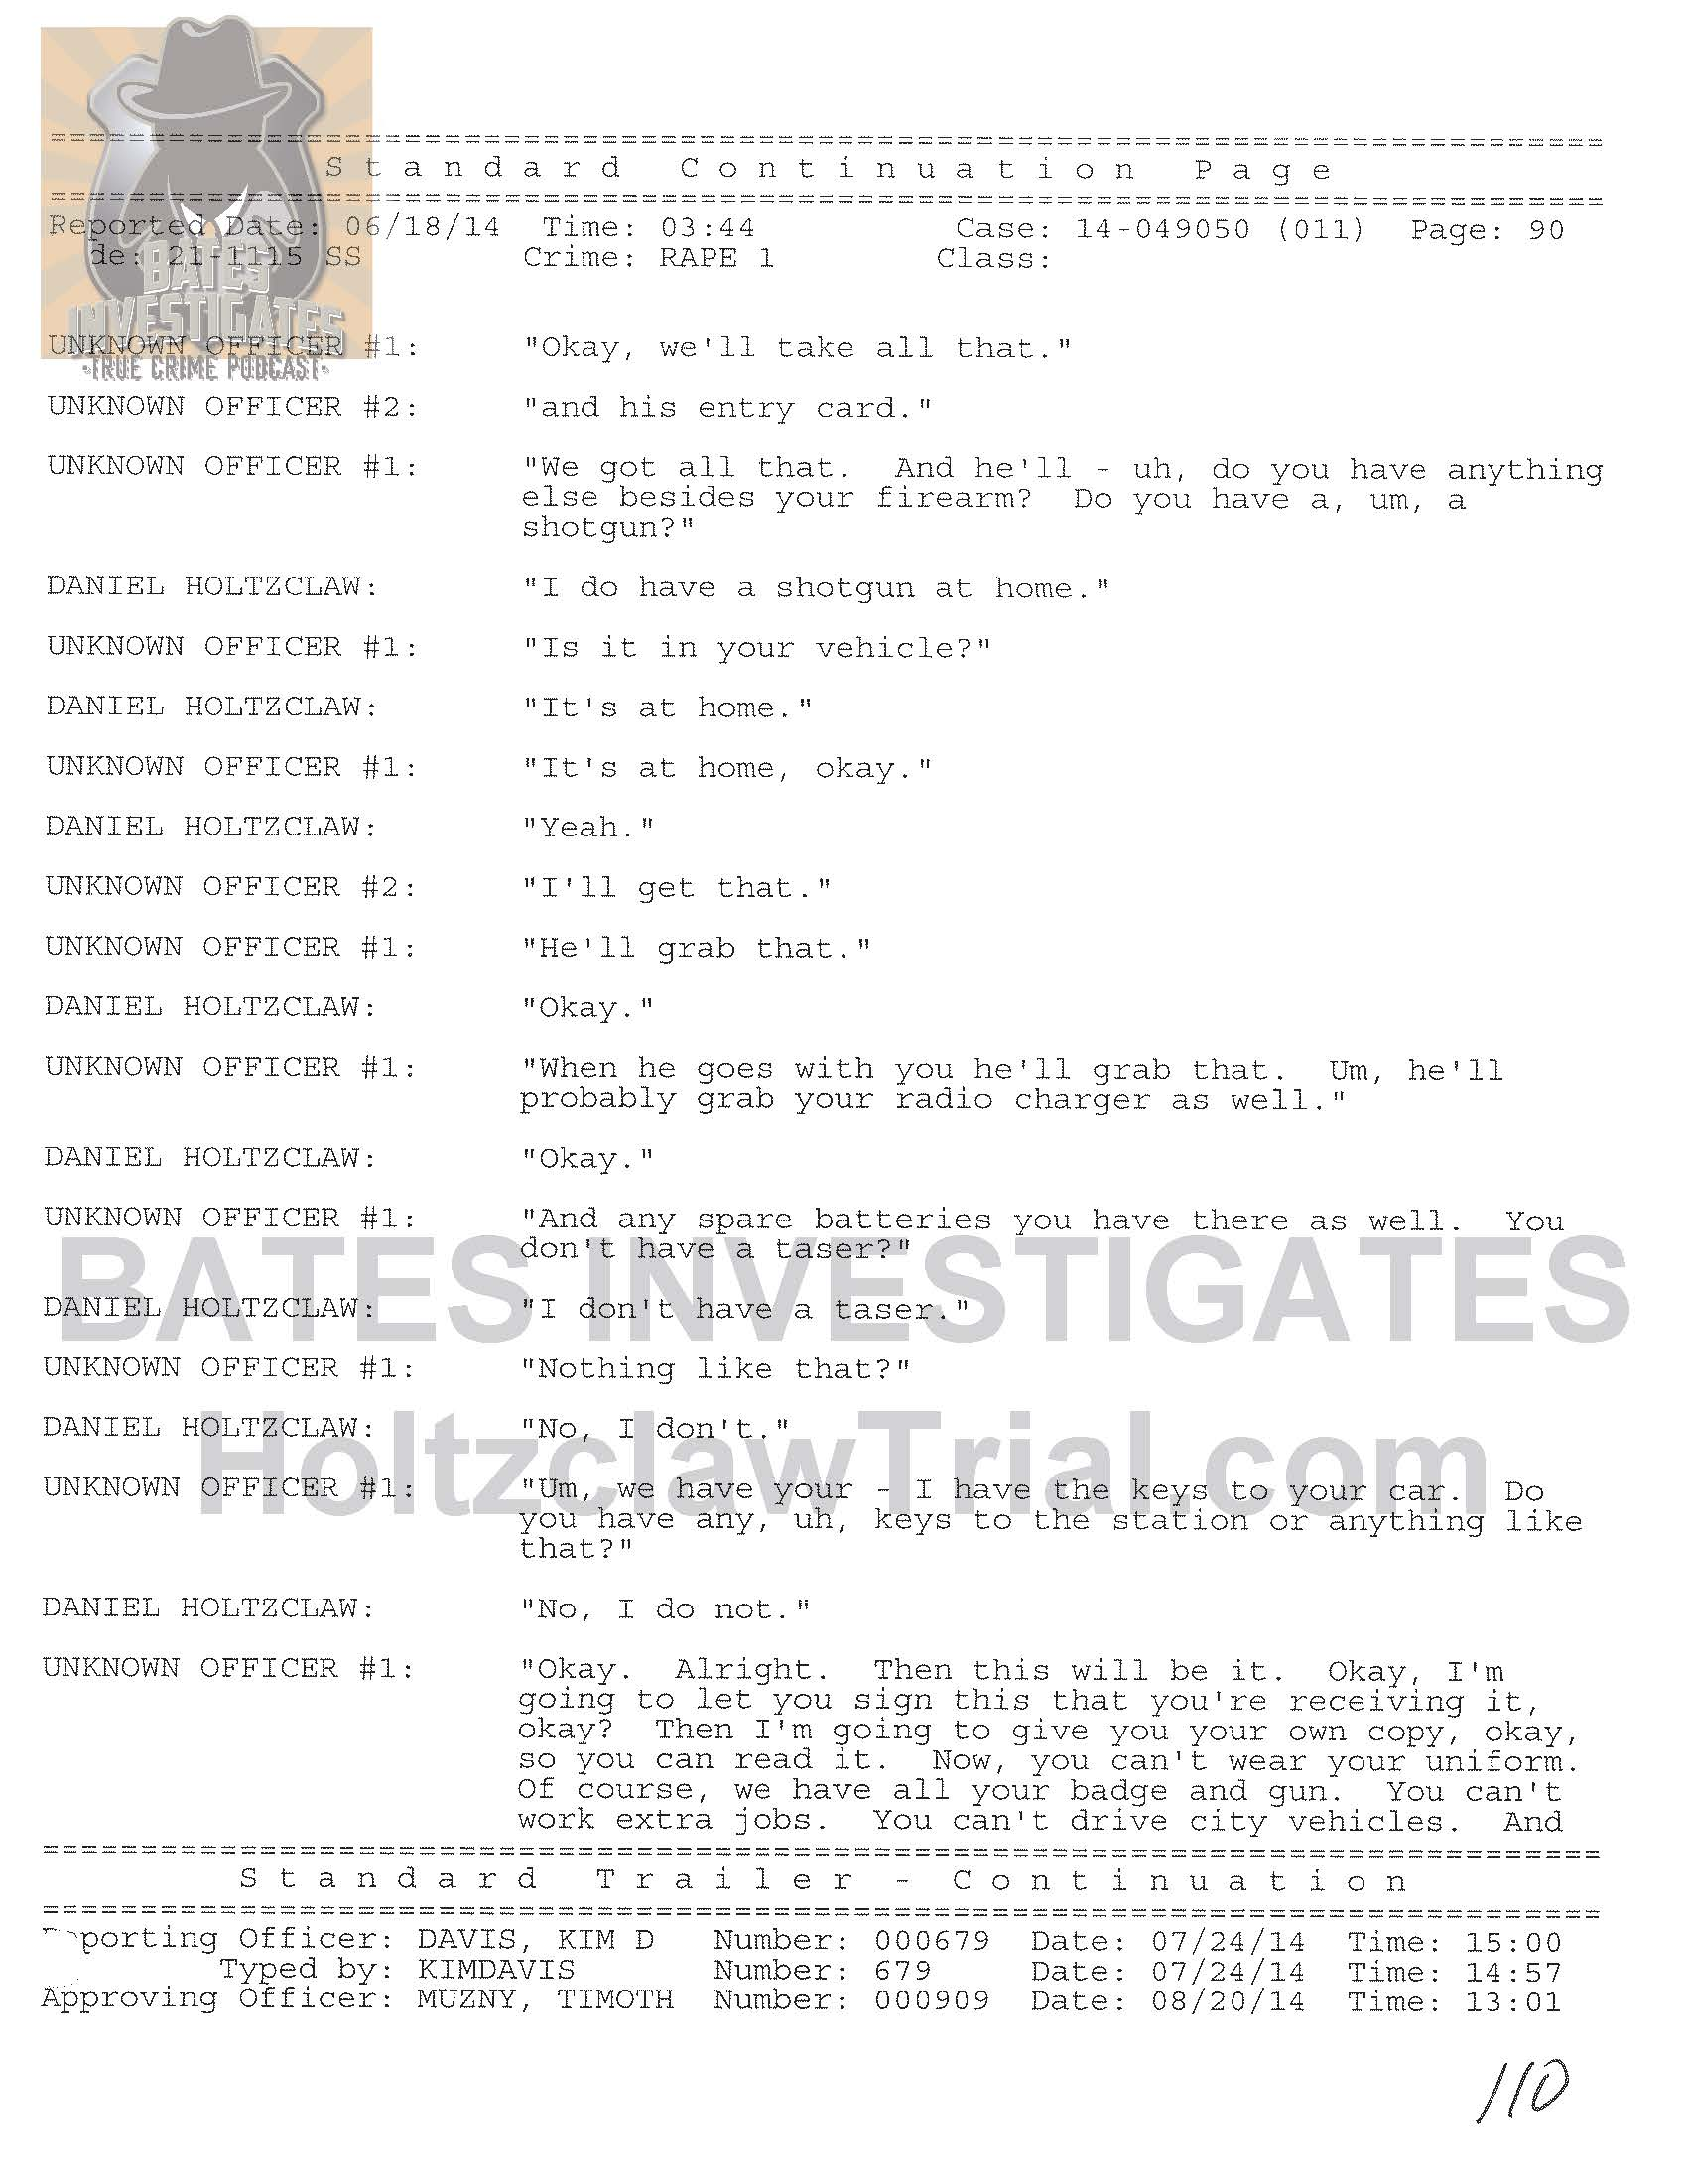 Holtzclaw Interrogation Transcript - Ep02 Redacted_Page_90.jpg